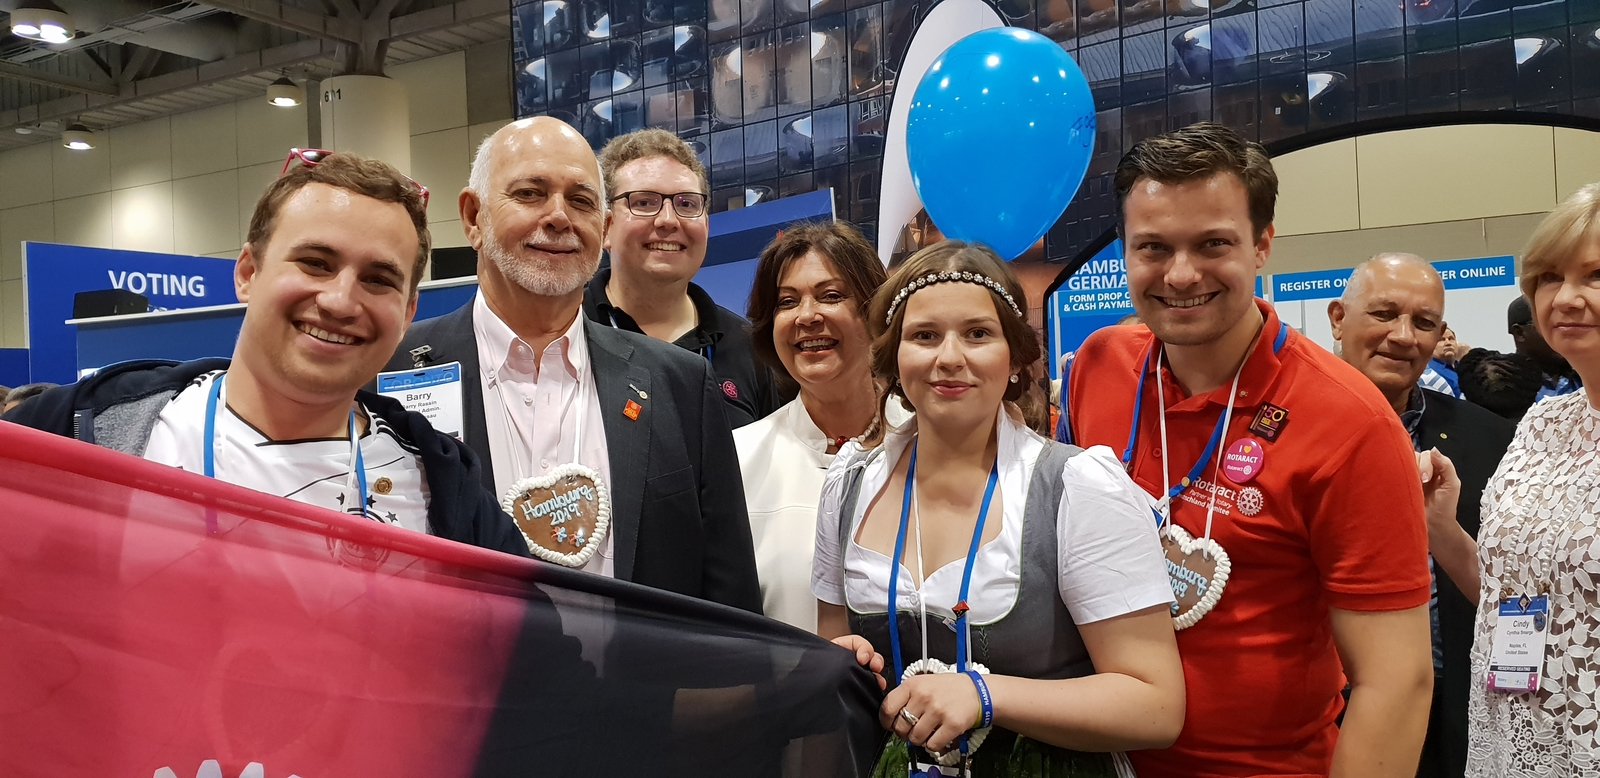 Ambrosius-Eichner,Wimmer, Rotaract, Barry Rassin, Convention, RI-Convention, Toronto